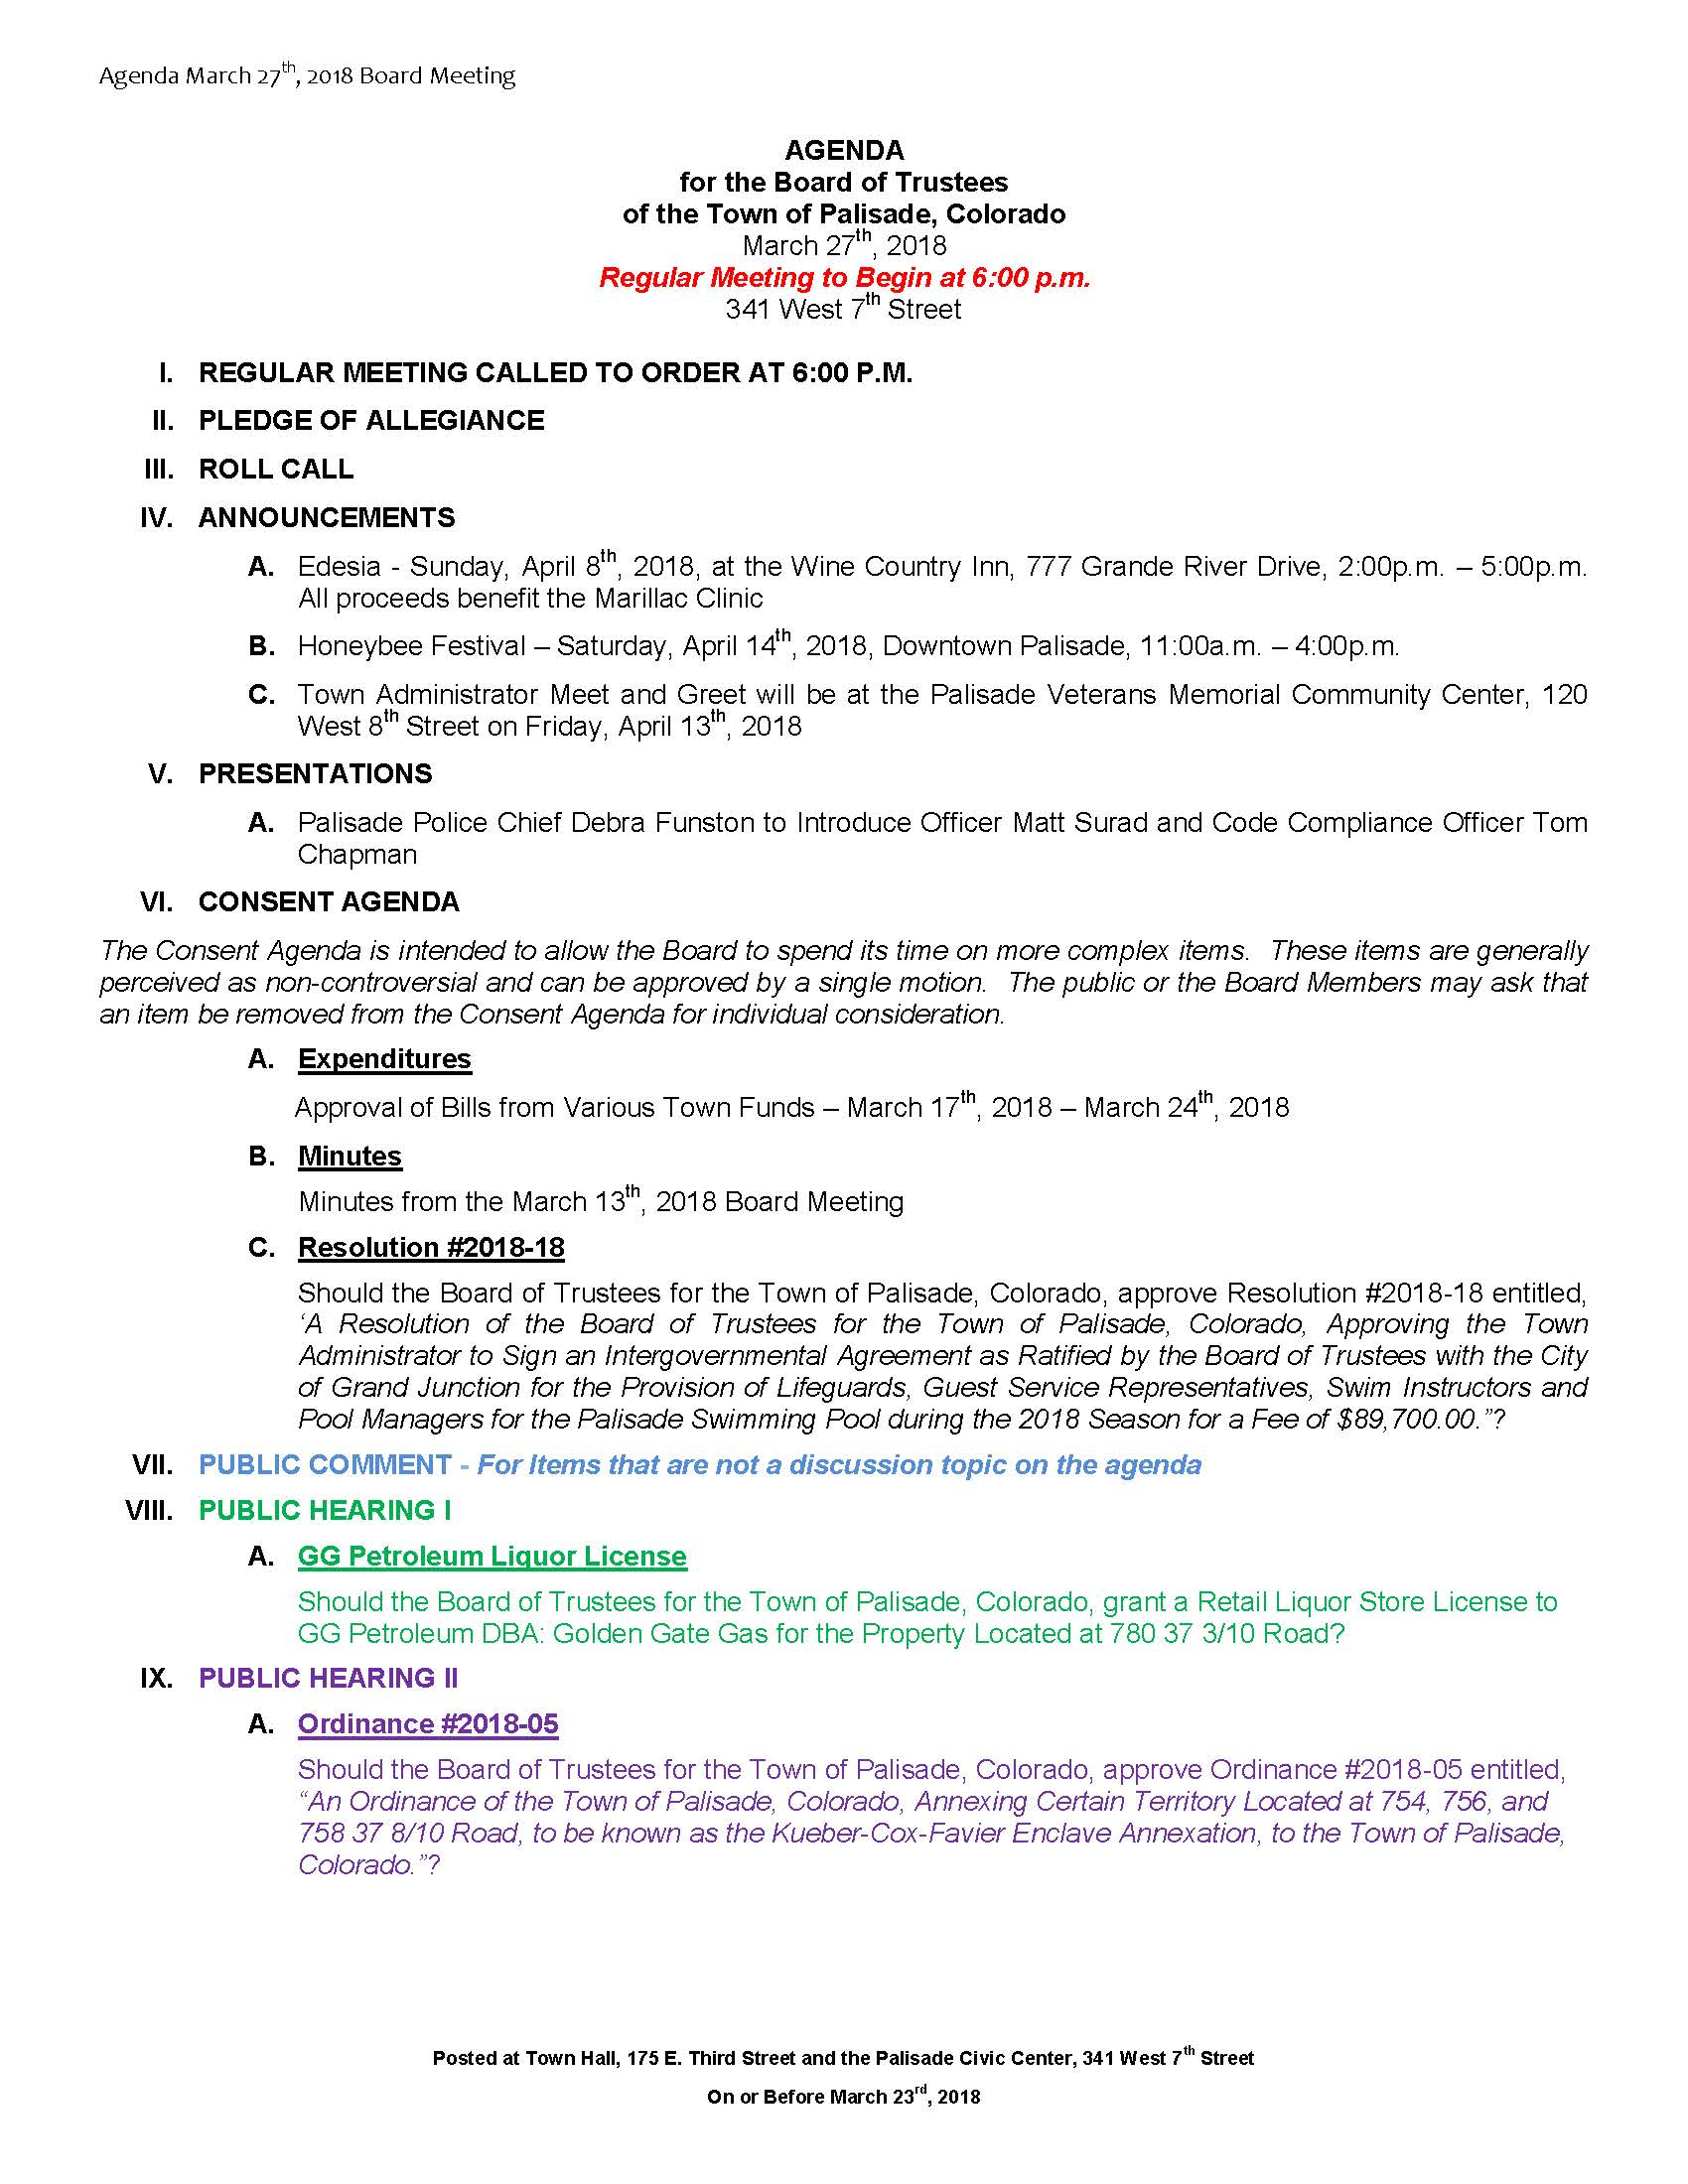 March 27th 2018 Board Meeting Agenda Page 1